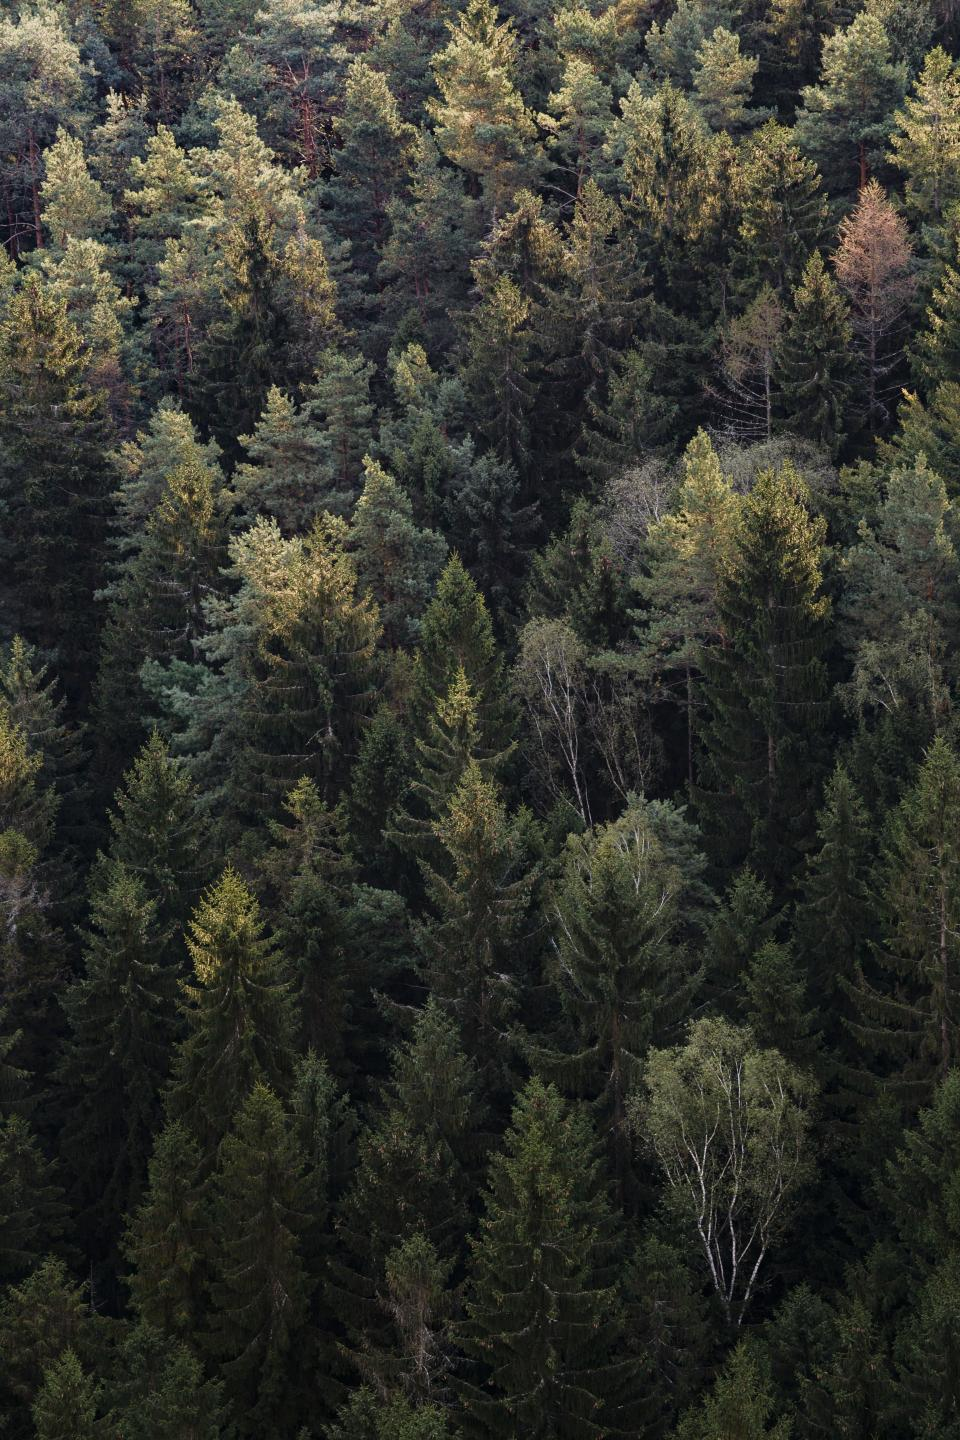 Free stock photo of woods forest